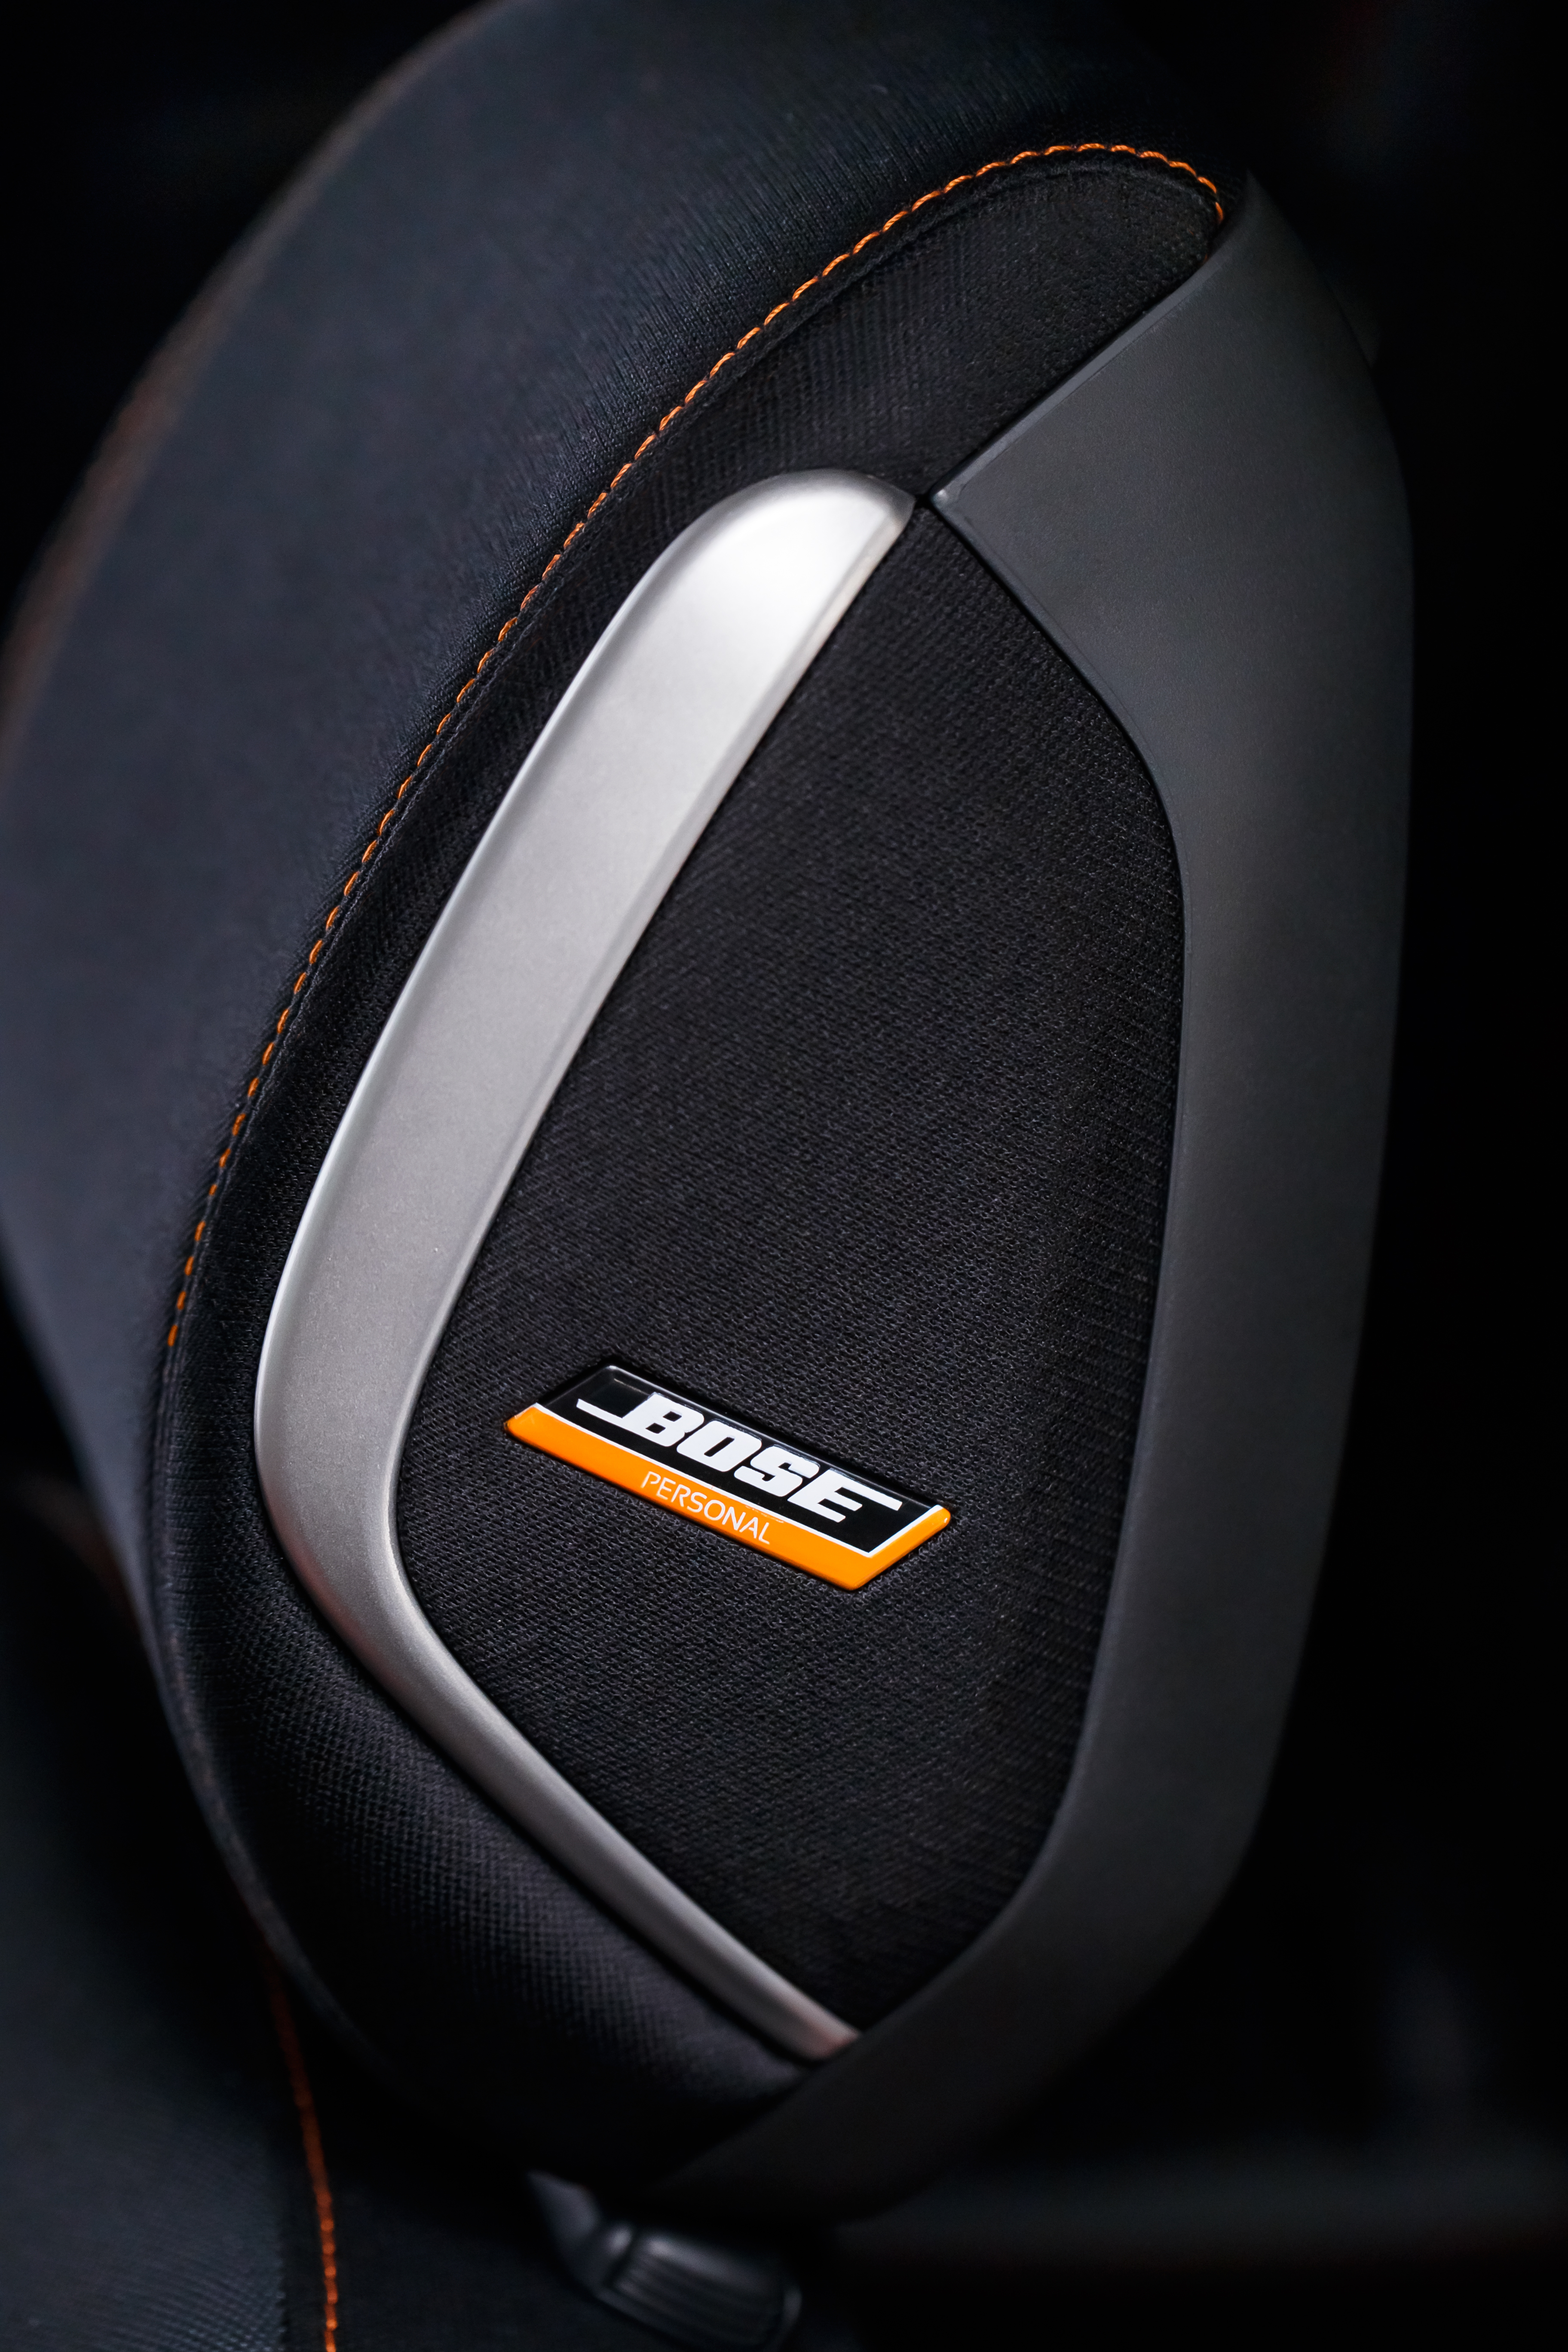 Bose Personal Sound System Debuts in All New Nissan Micra